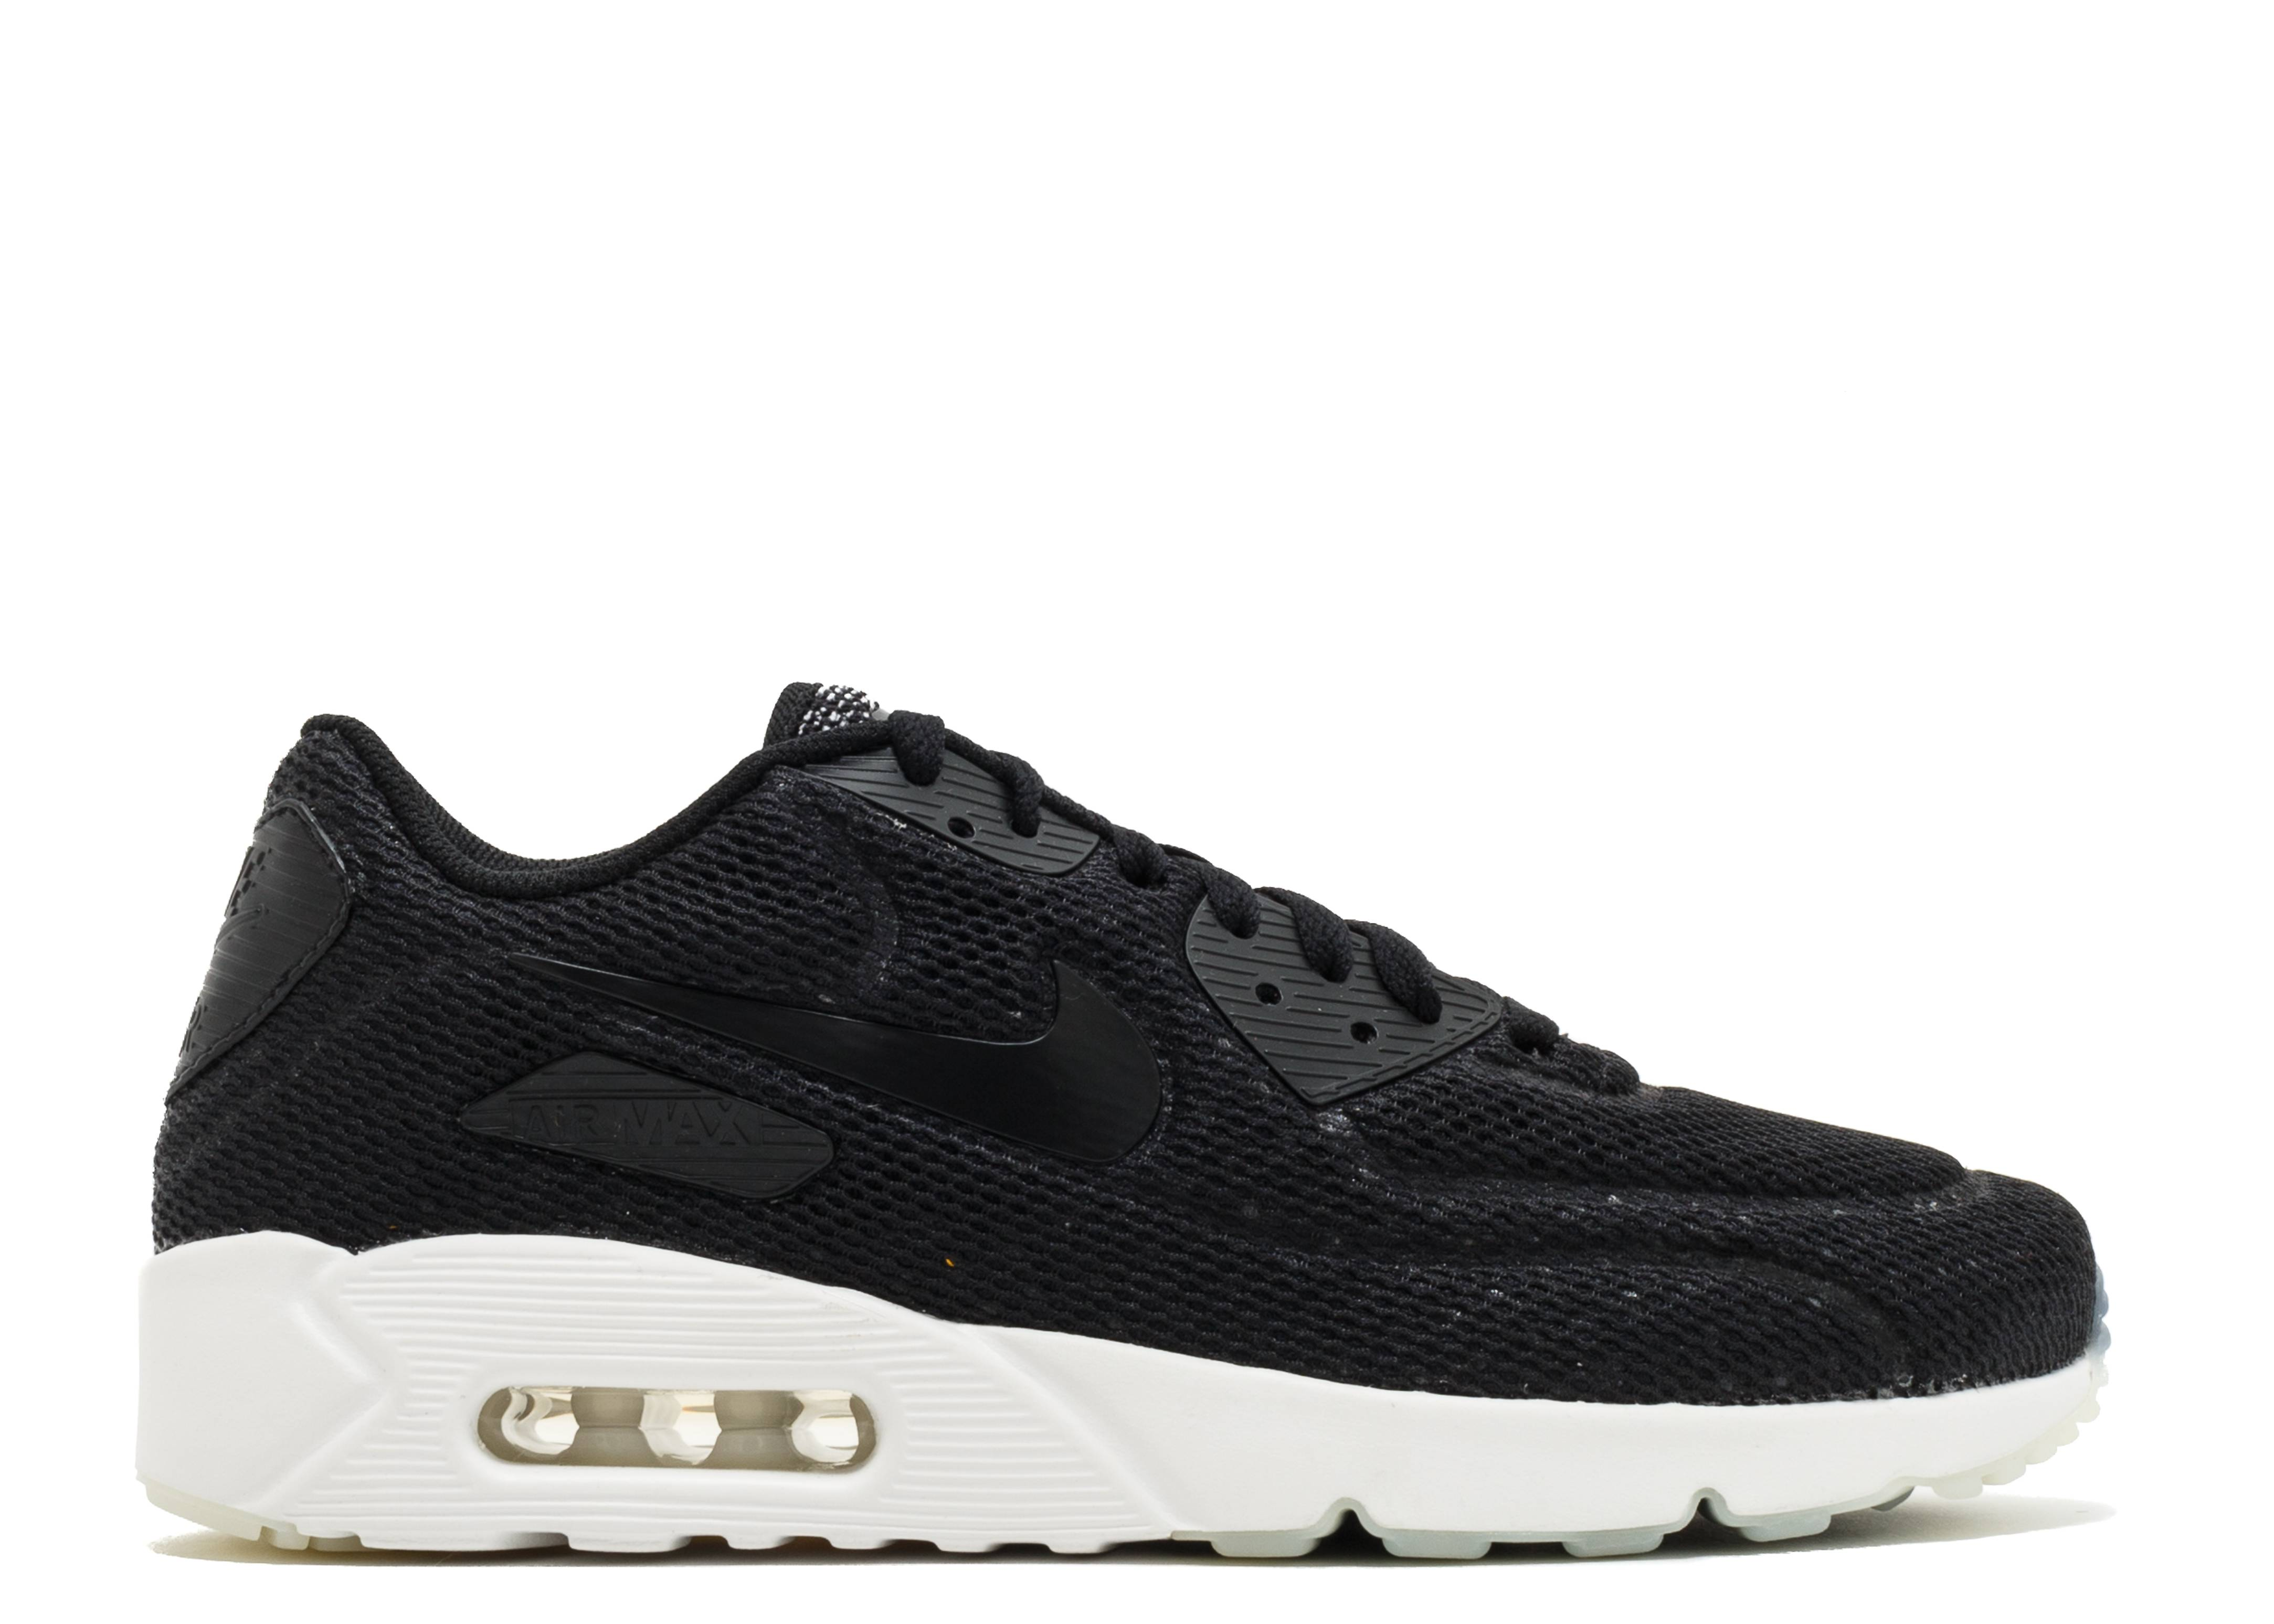 quality design 6d8b8 f67f5 AIR MAX 90 ULTRA 2.0 BREATHE